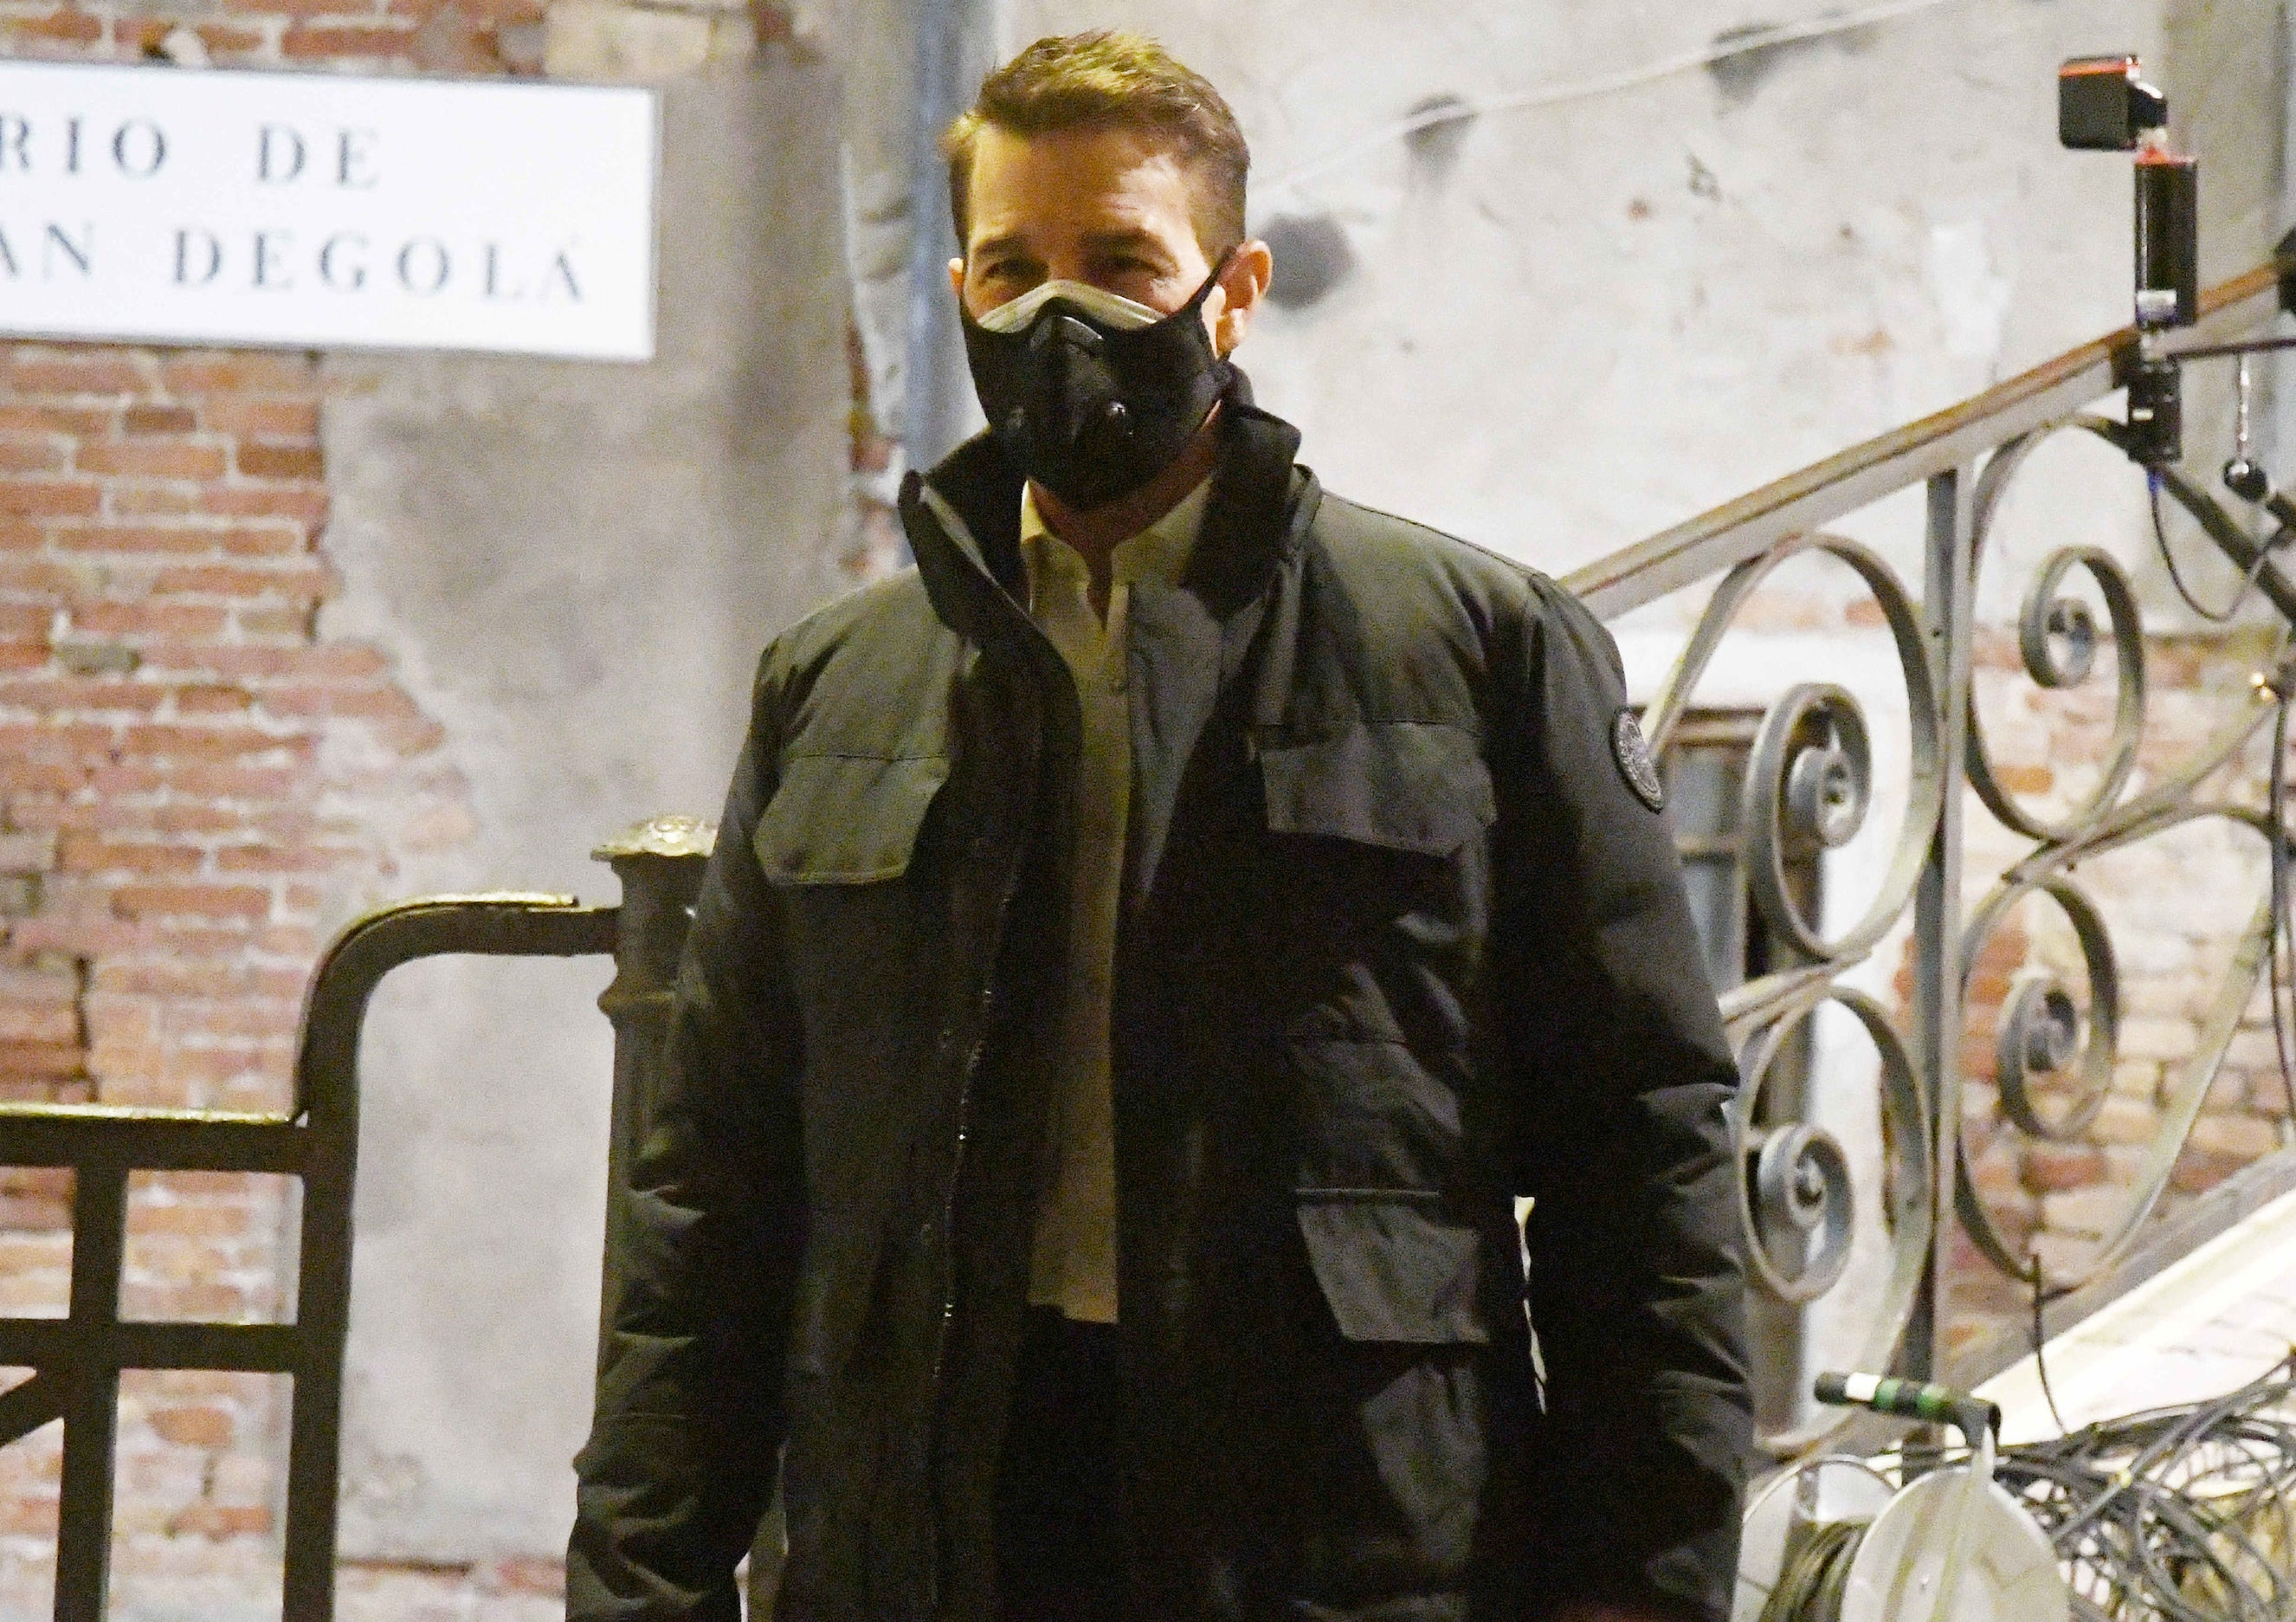 Tom wears a heavy coat and mask while walking around set at night